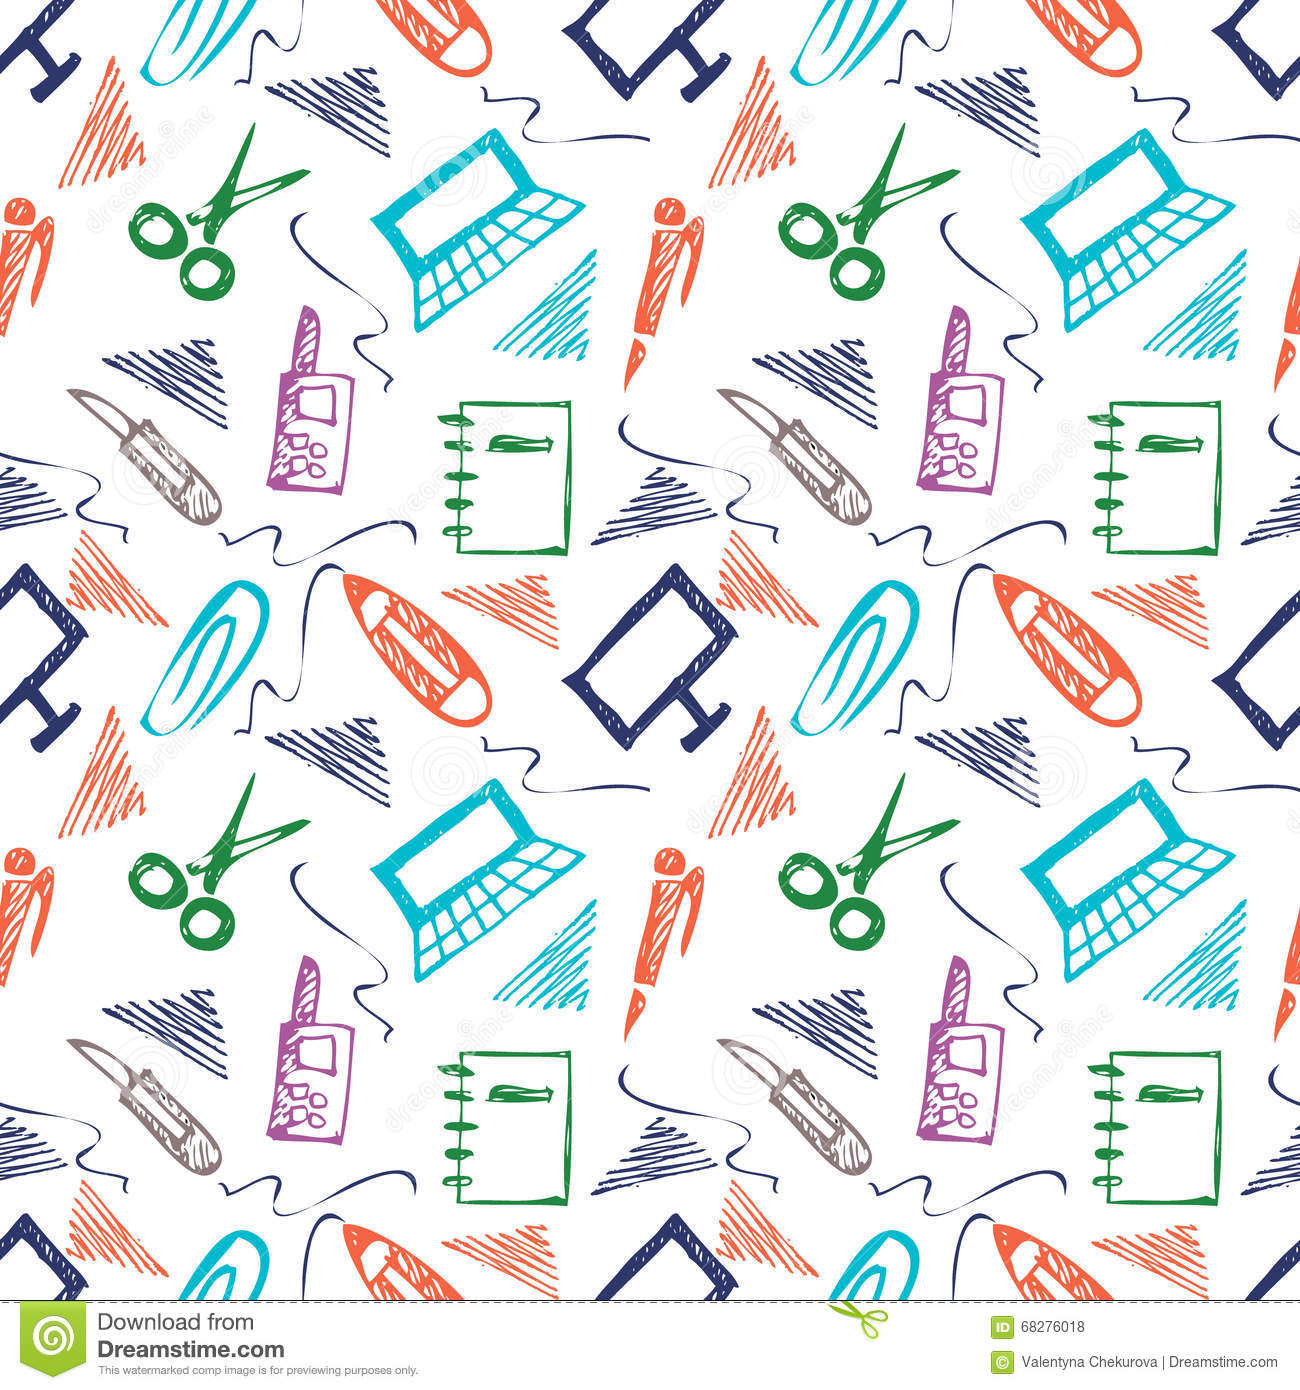 Seamless Vector Pattern With Elements Of Office Supplies. Colorful ...